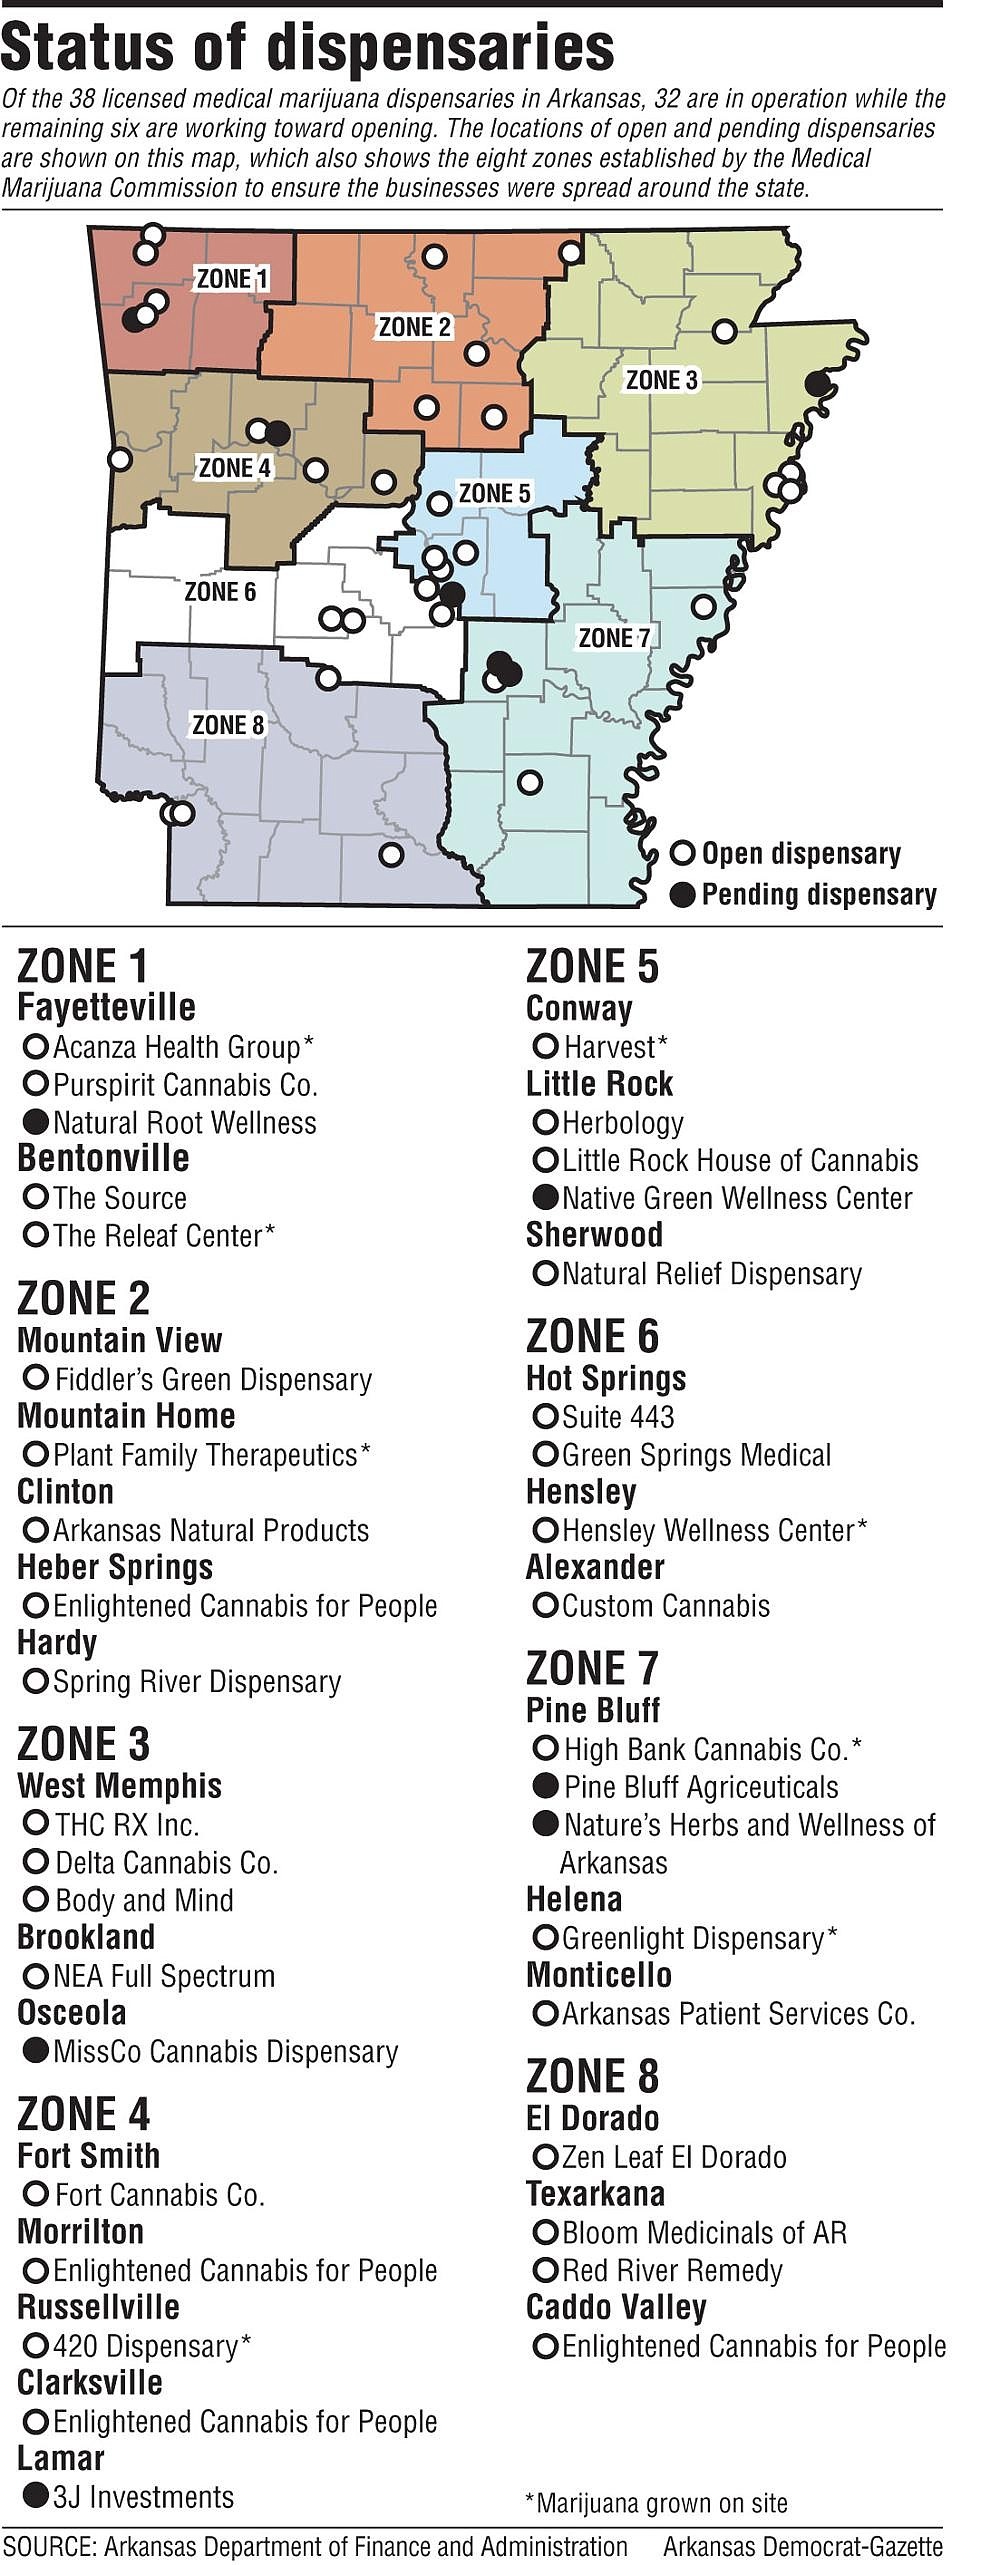 Status of dispensaries